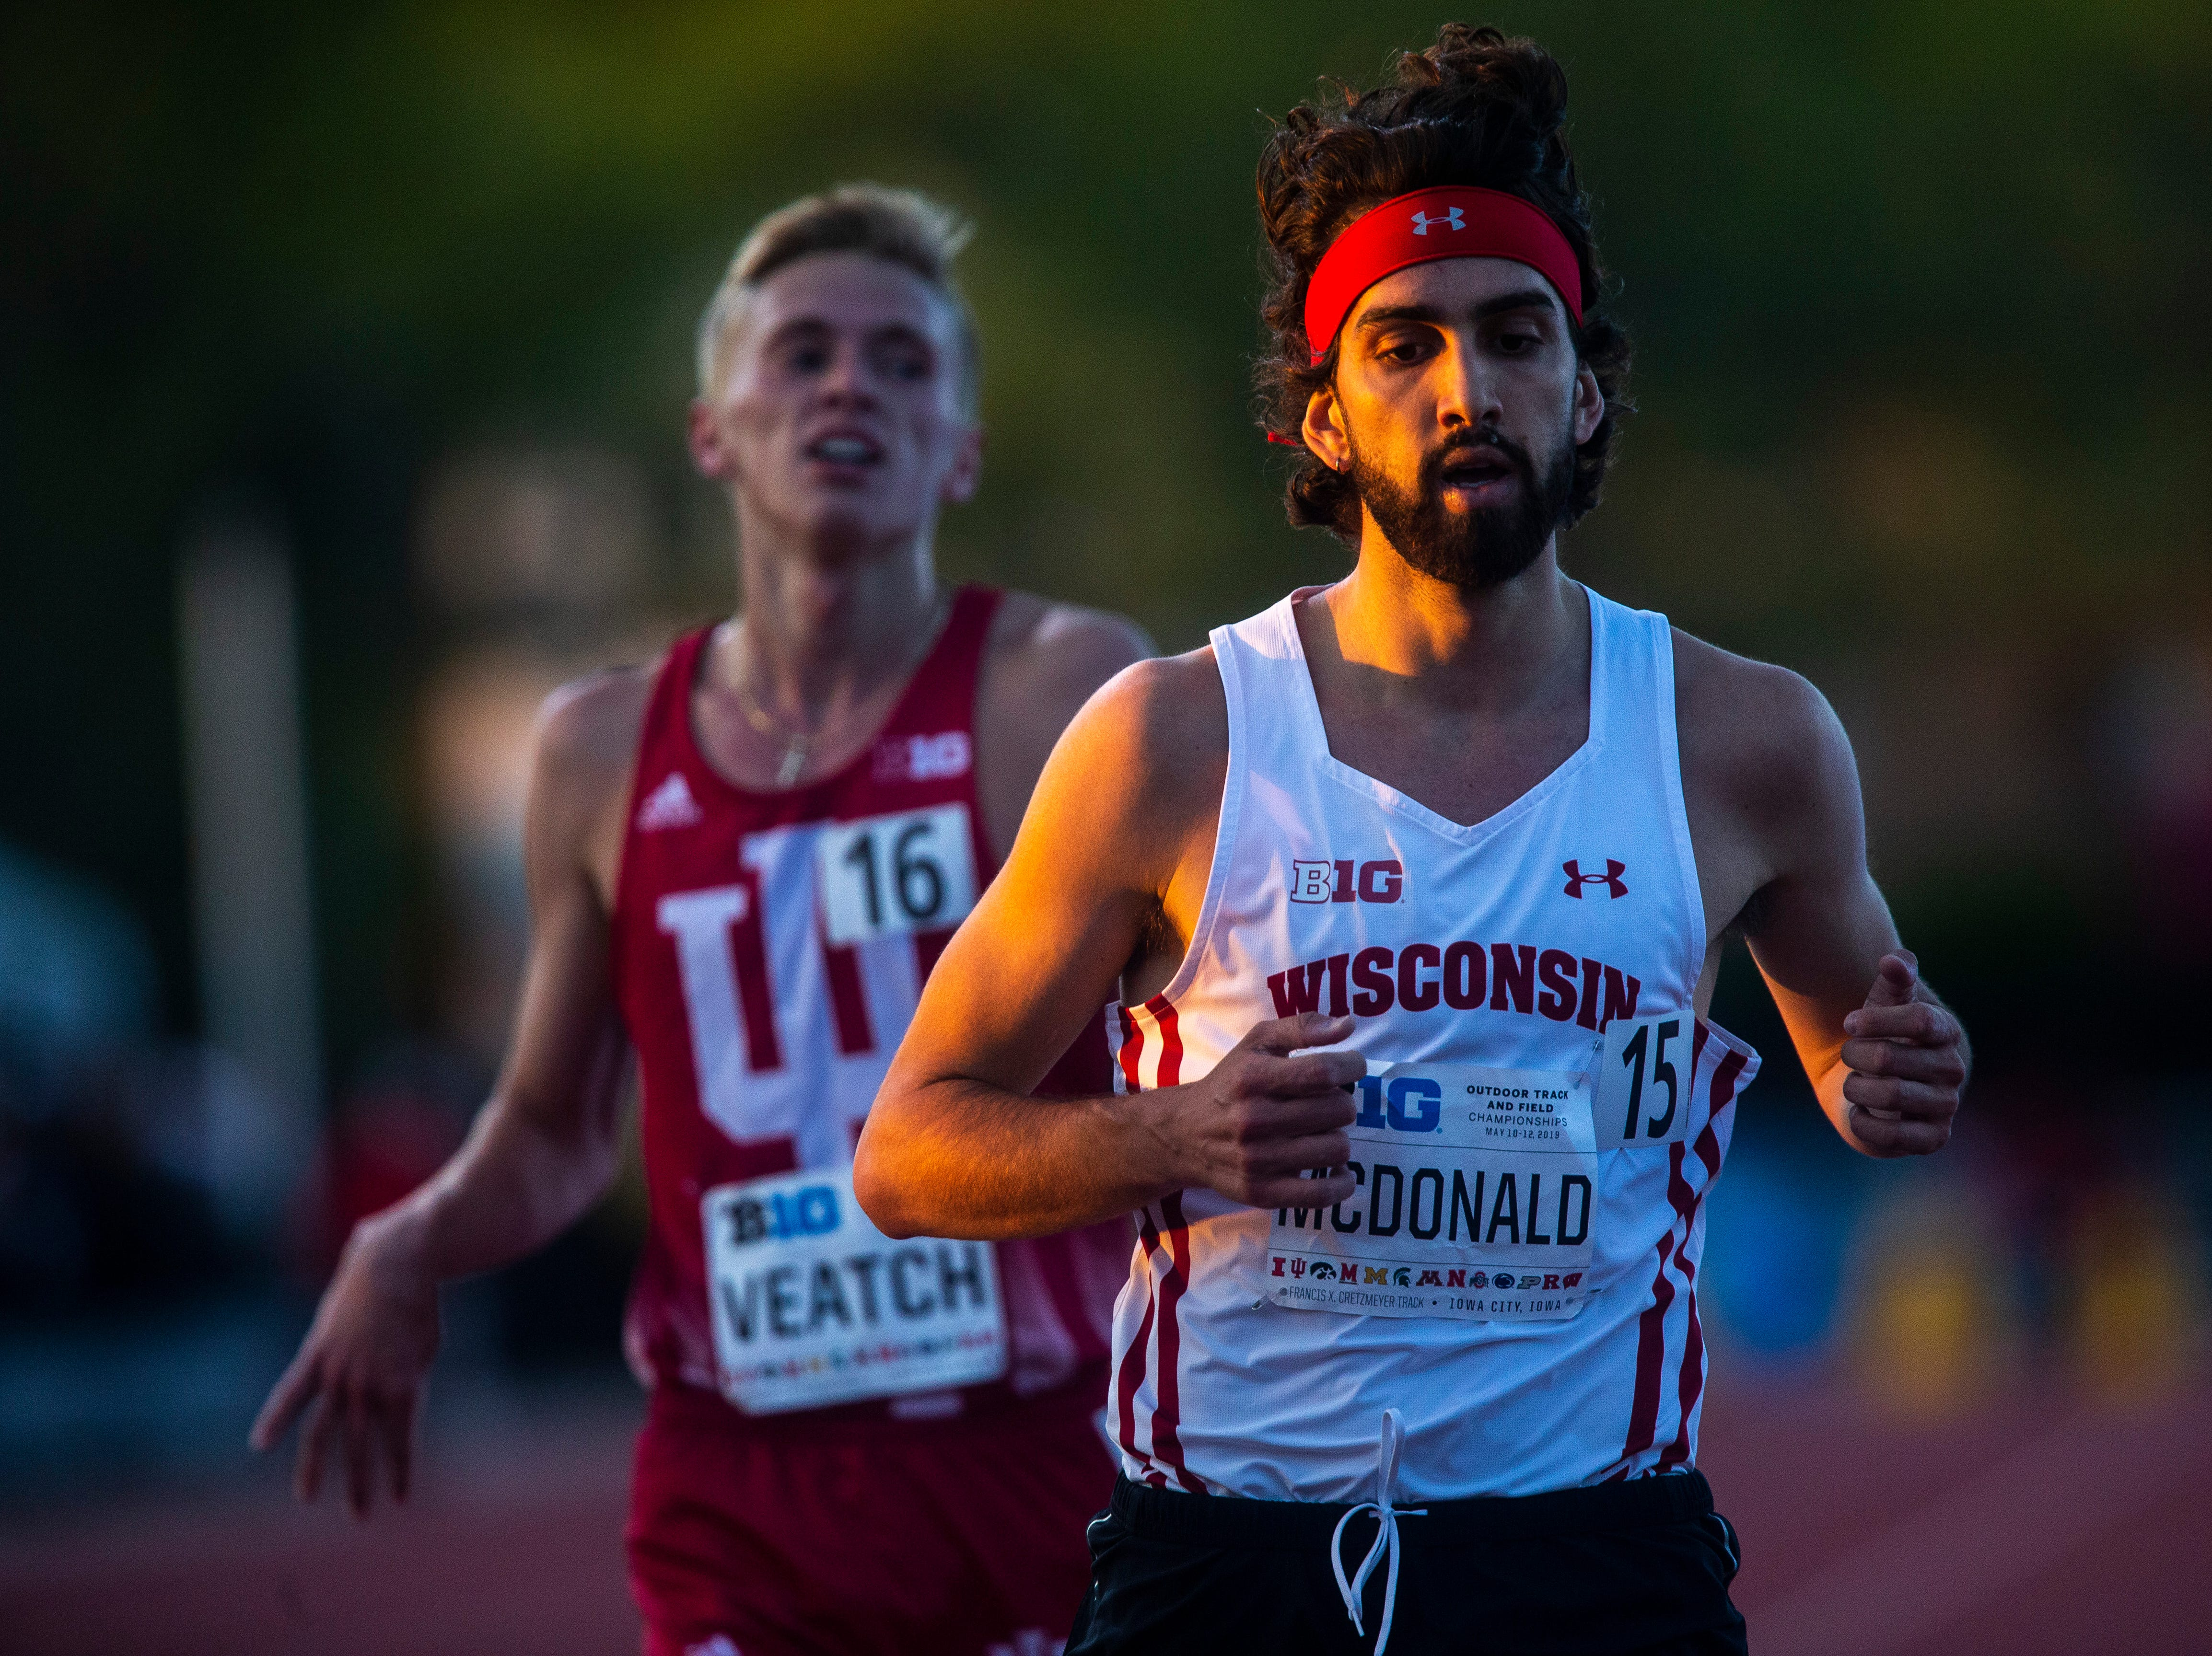 Wisconsin senior Morgan McDonald crosses the finish line ahead of Indiana redshirt sophomore Ben Veatch in the 10,000 meter during the first night of Big Ten track and field outdoor championships, Friday, May 10, 2019, at Francis X. Cretzmeyer Track on the University of Iowa campus in Iowa City, Iowa. McDonald finished with a time of 29:26.06.